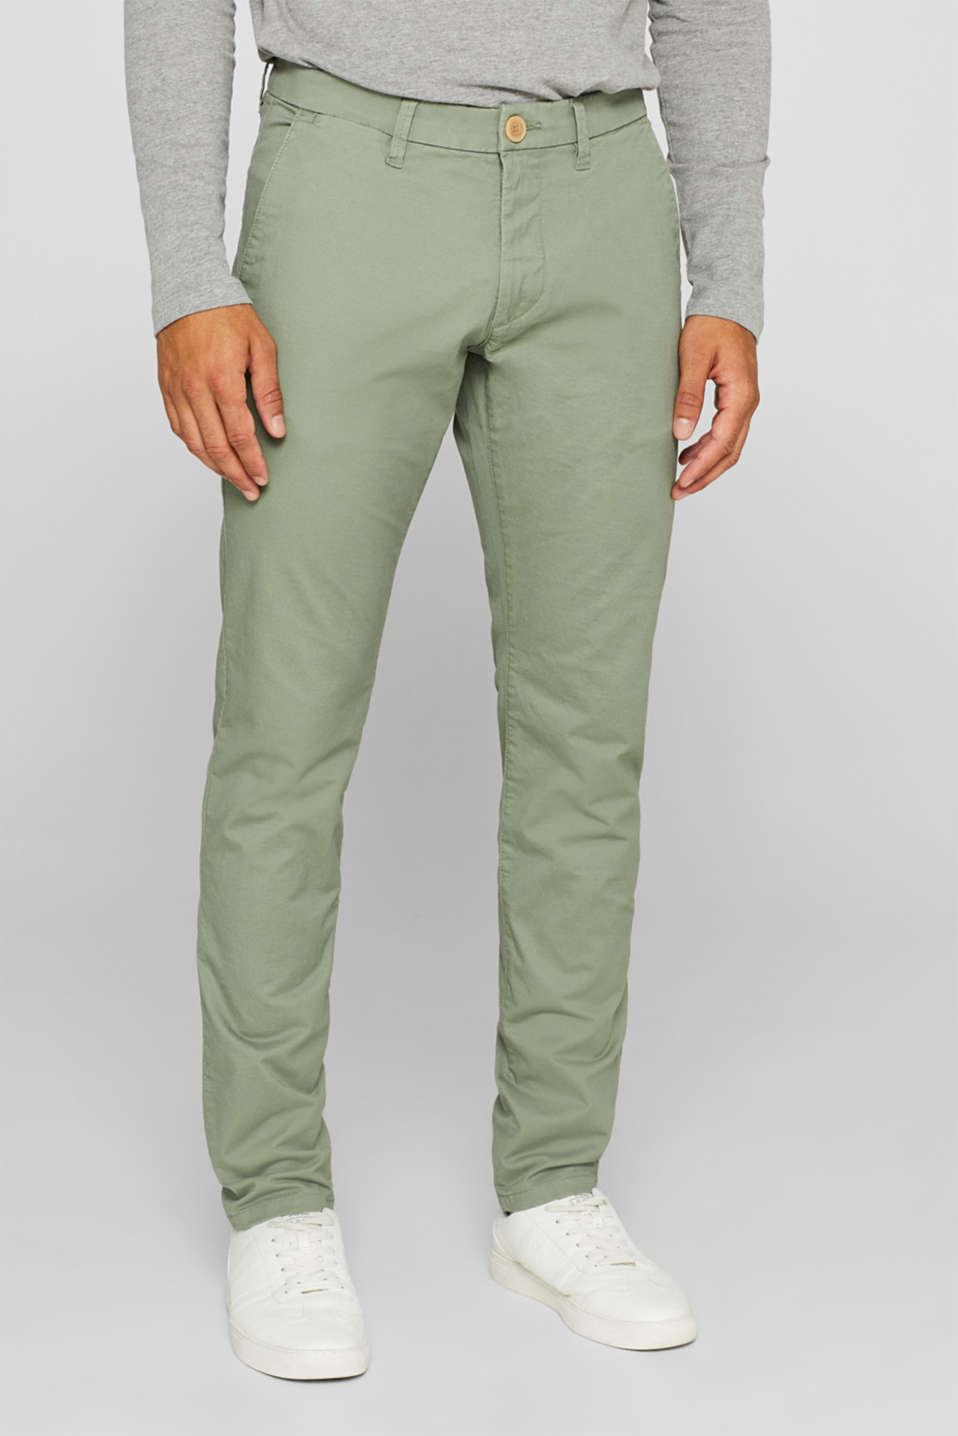 Esprit - 5-Pocket-Pants aus Baumwoll-Stretch